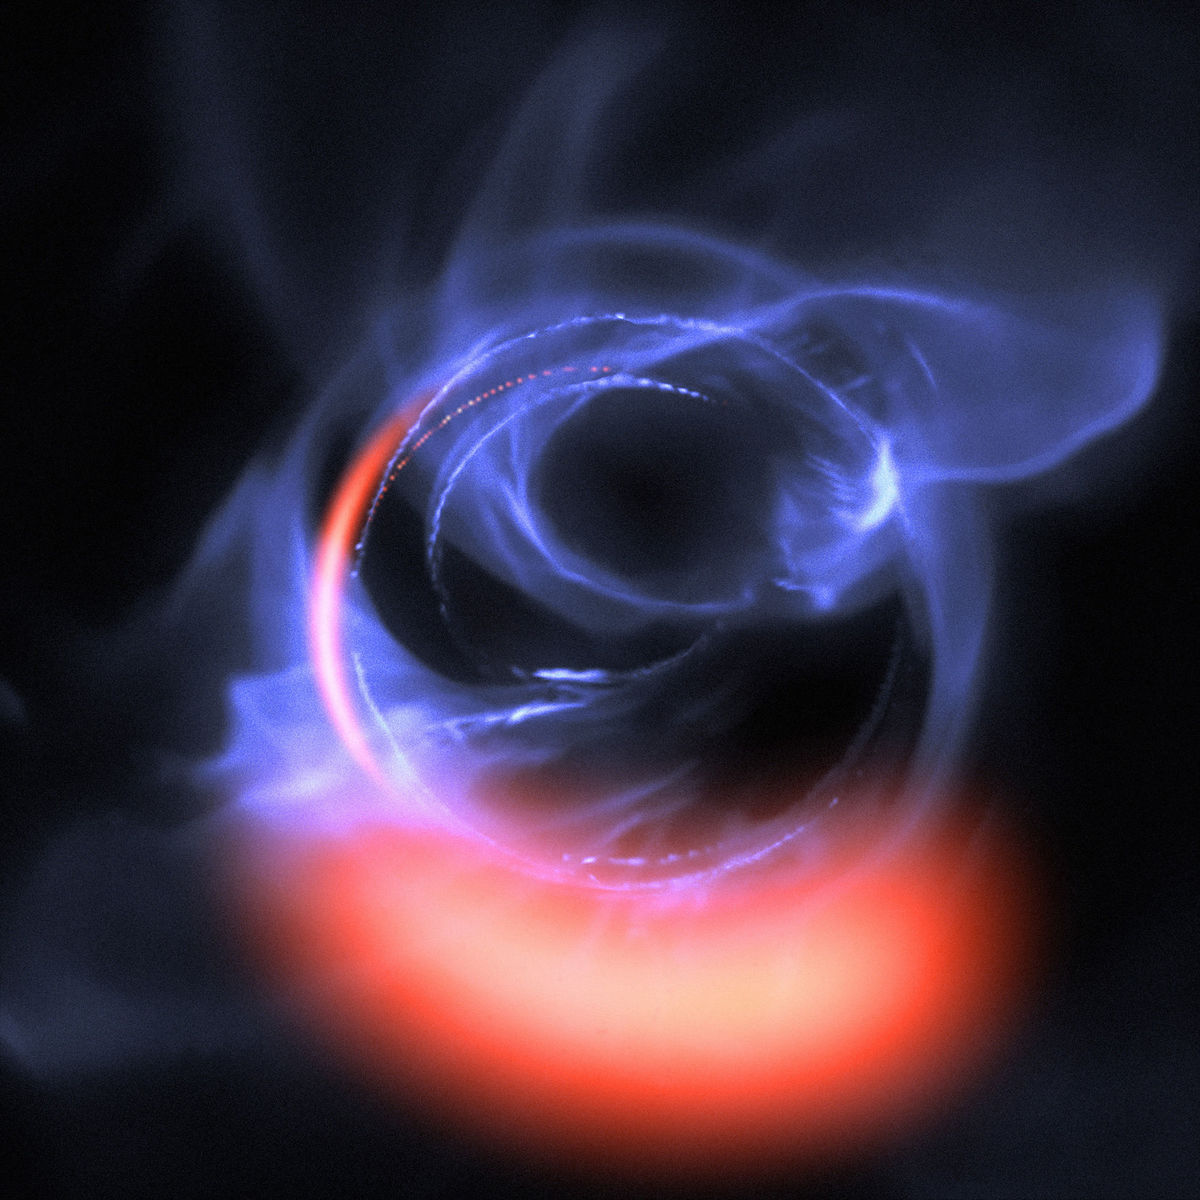 A computer simulation shows the light emitted from dust swirling at 30% the speed of light around a black hole. Incredibly strong gravity affects the path the light takes, creating the warped structure. Credit: ESO/Gravity Consortium/L. Calçada